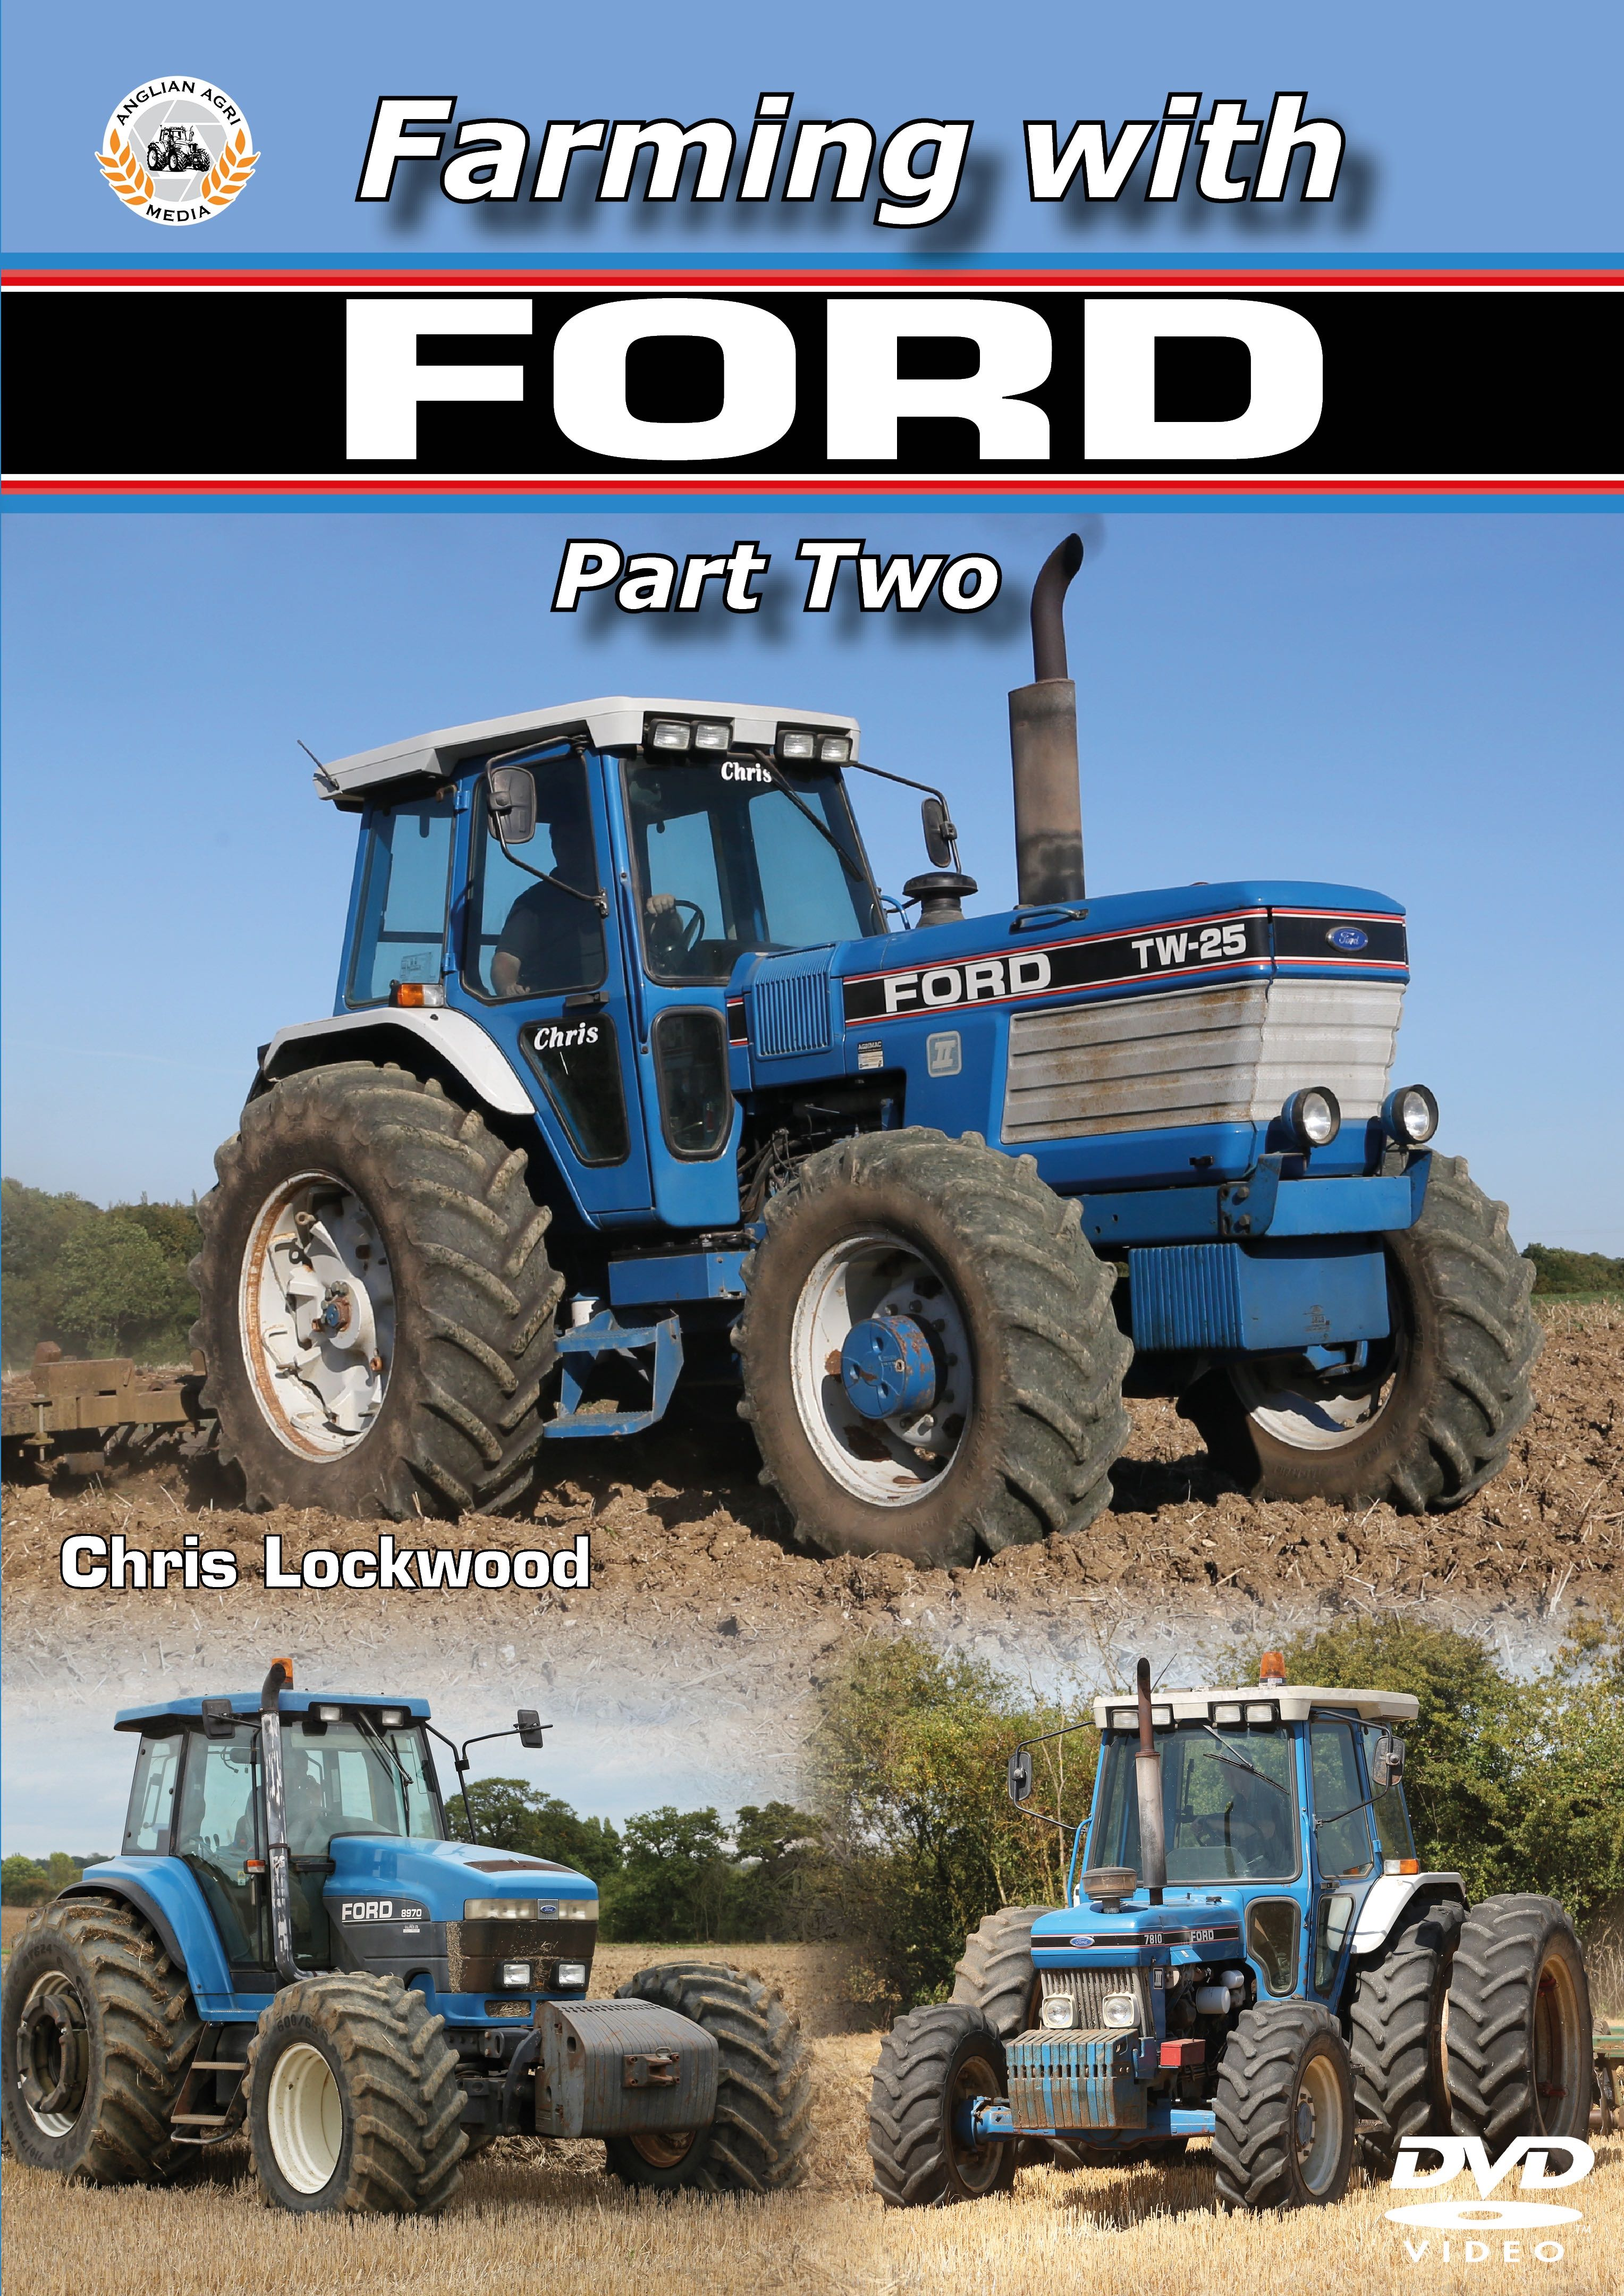 Farming with Ford - Part Two